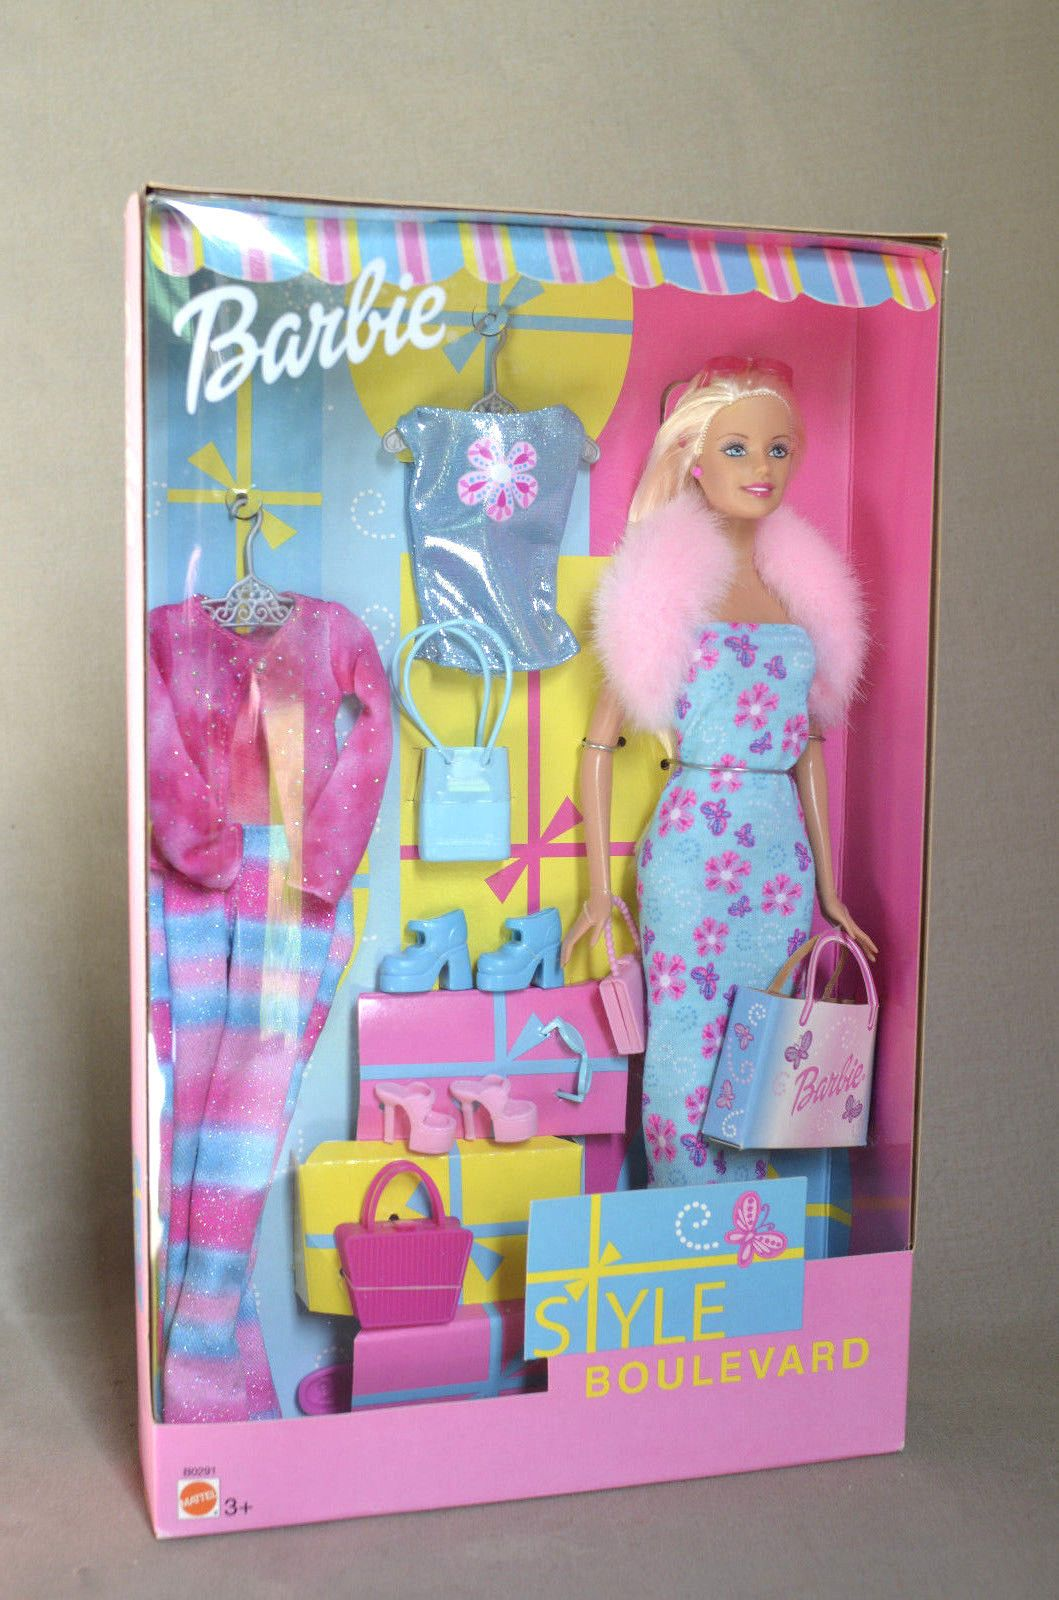 Bd Barbie Style Boulevard Blue Dress Foreign Mattel 80291 Barbie Toys Barbie Fashionista Dolls Barbie